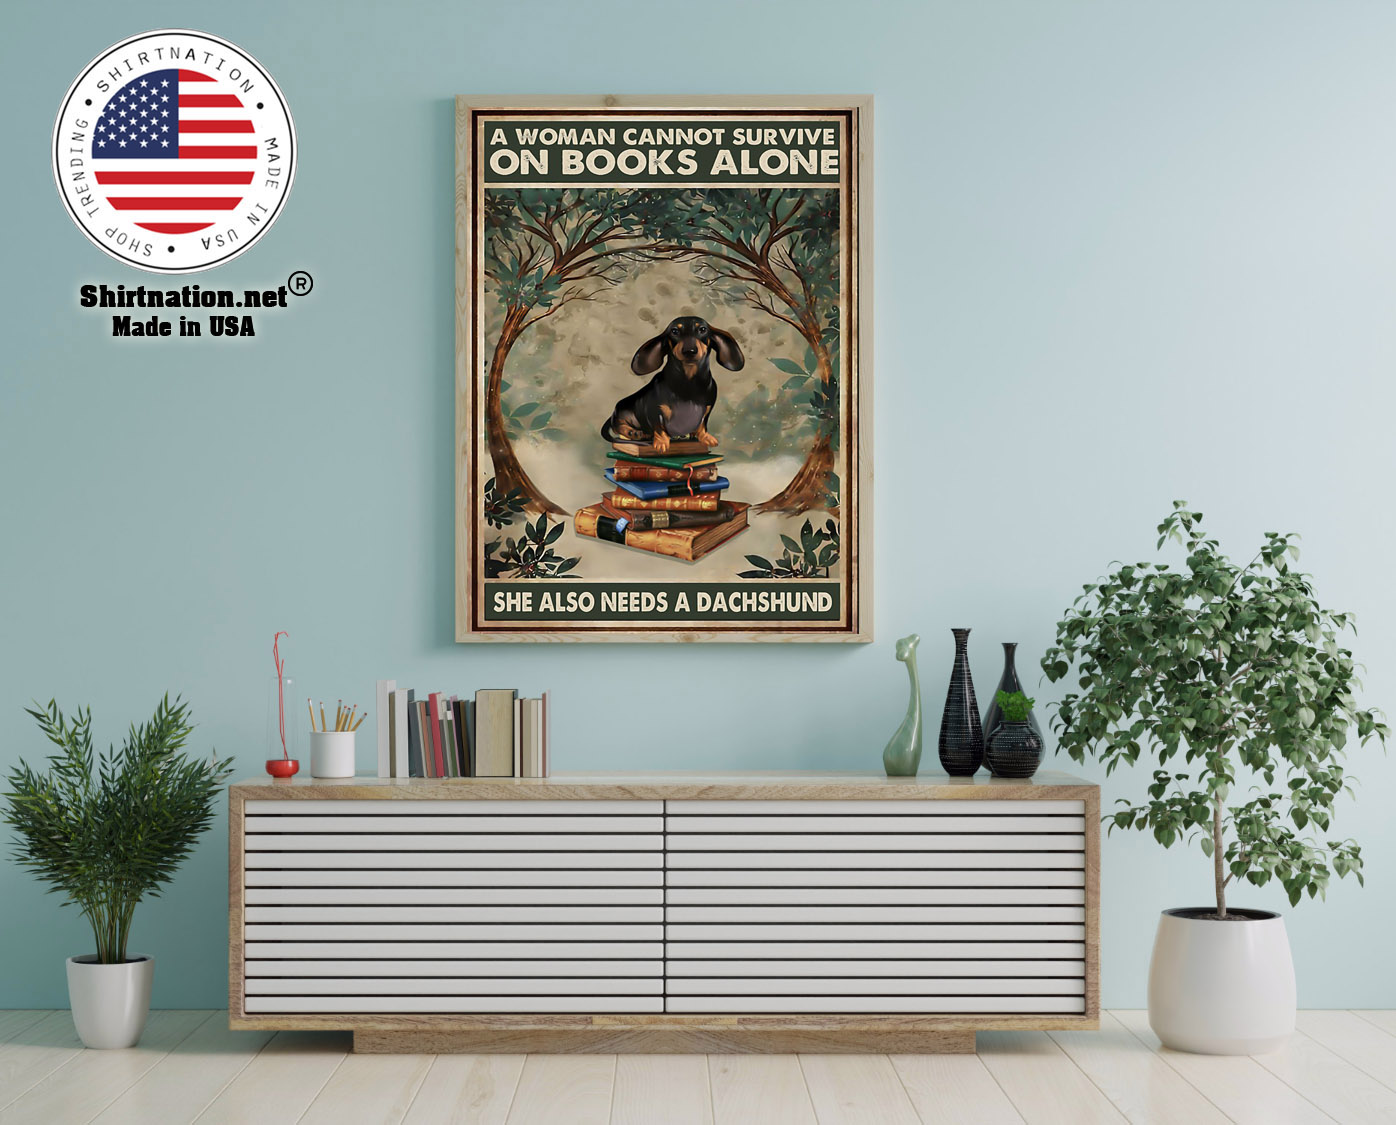 A woman cannot survive on the book alone she need dachshund poster 12